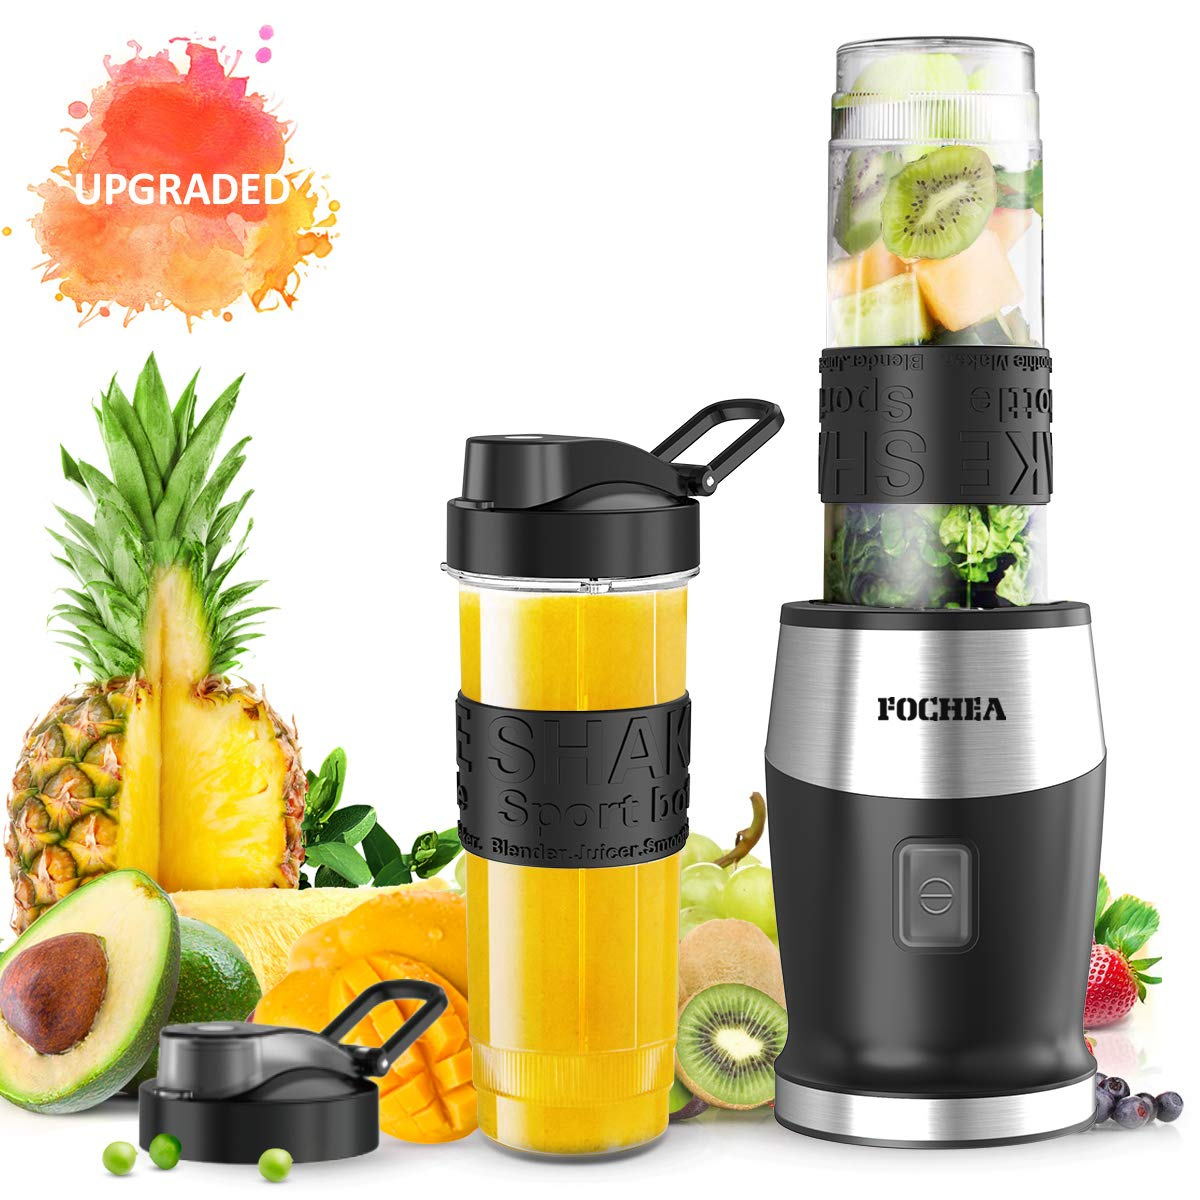 Smoothie Blender,Personal Blender Single Serve Small Blender for Juice shakes and Smoothies,with Two 570ml BPA-Free Portable Blender Bottles, 500W 24,000 RPM